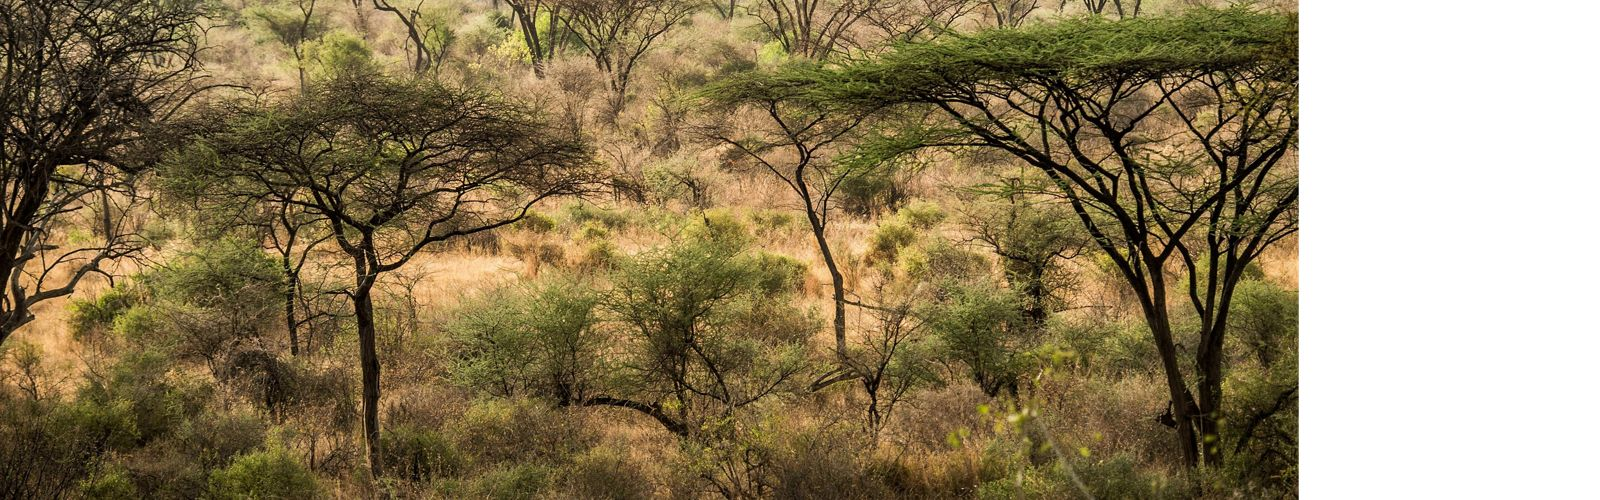 small acacia trees dot a grassland landscape, forming a pattern of trees in greens and browns